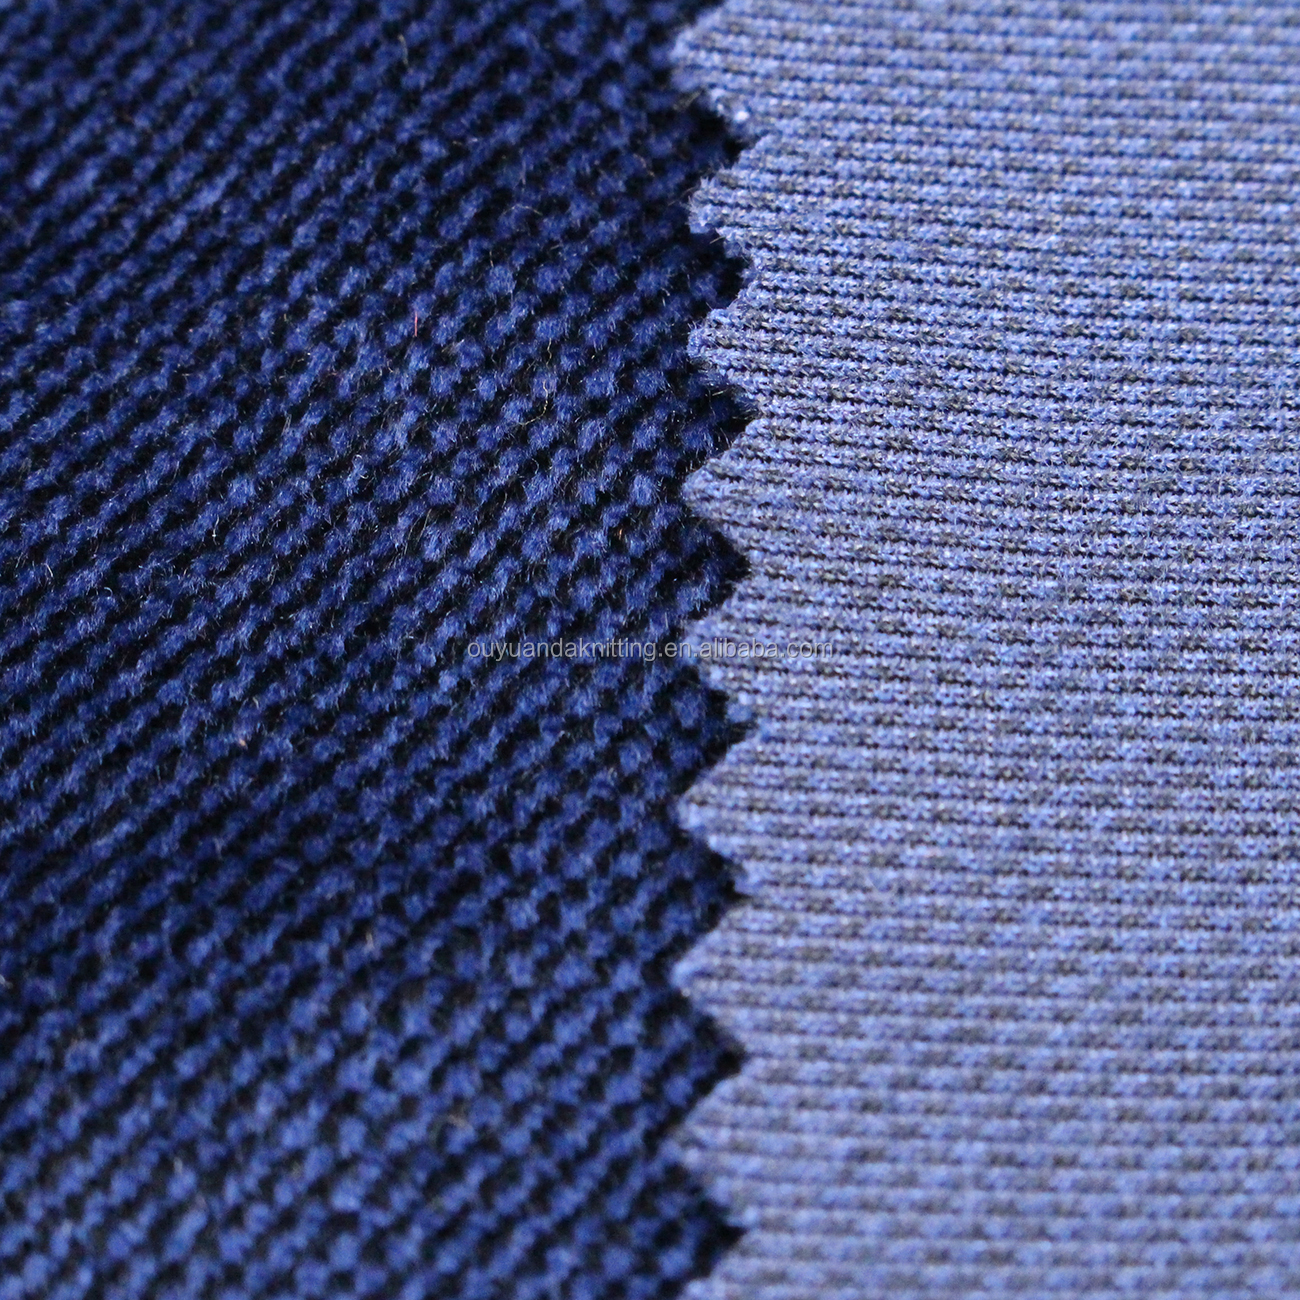 100gsm-200gsm 100% Polyester Loop Velvet Fabric Brushed Fabric for Home Textile / Uplolstery / Lining